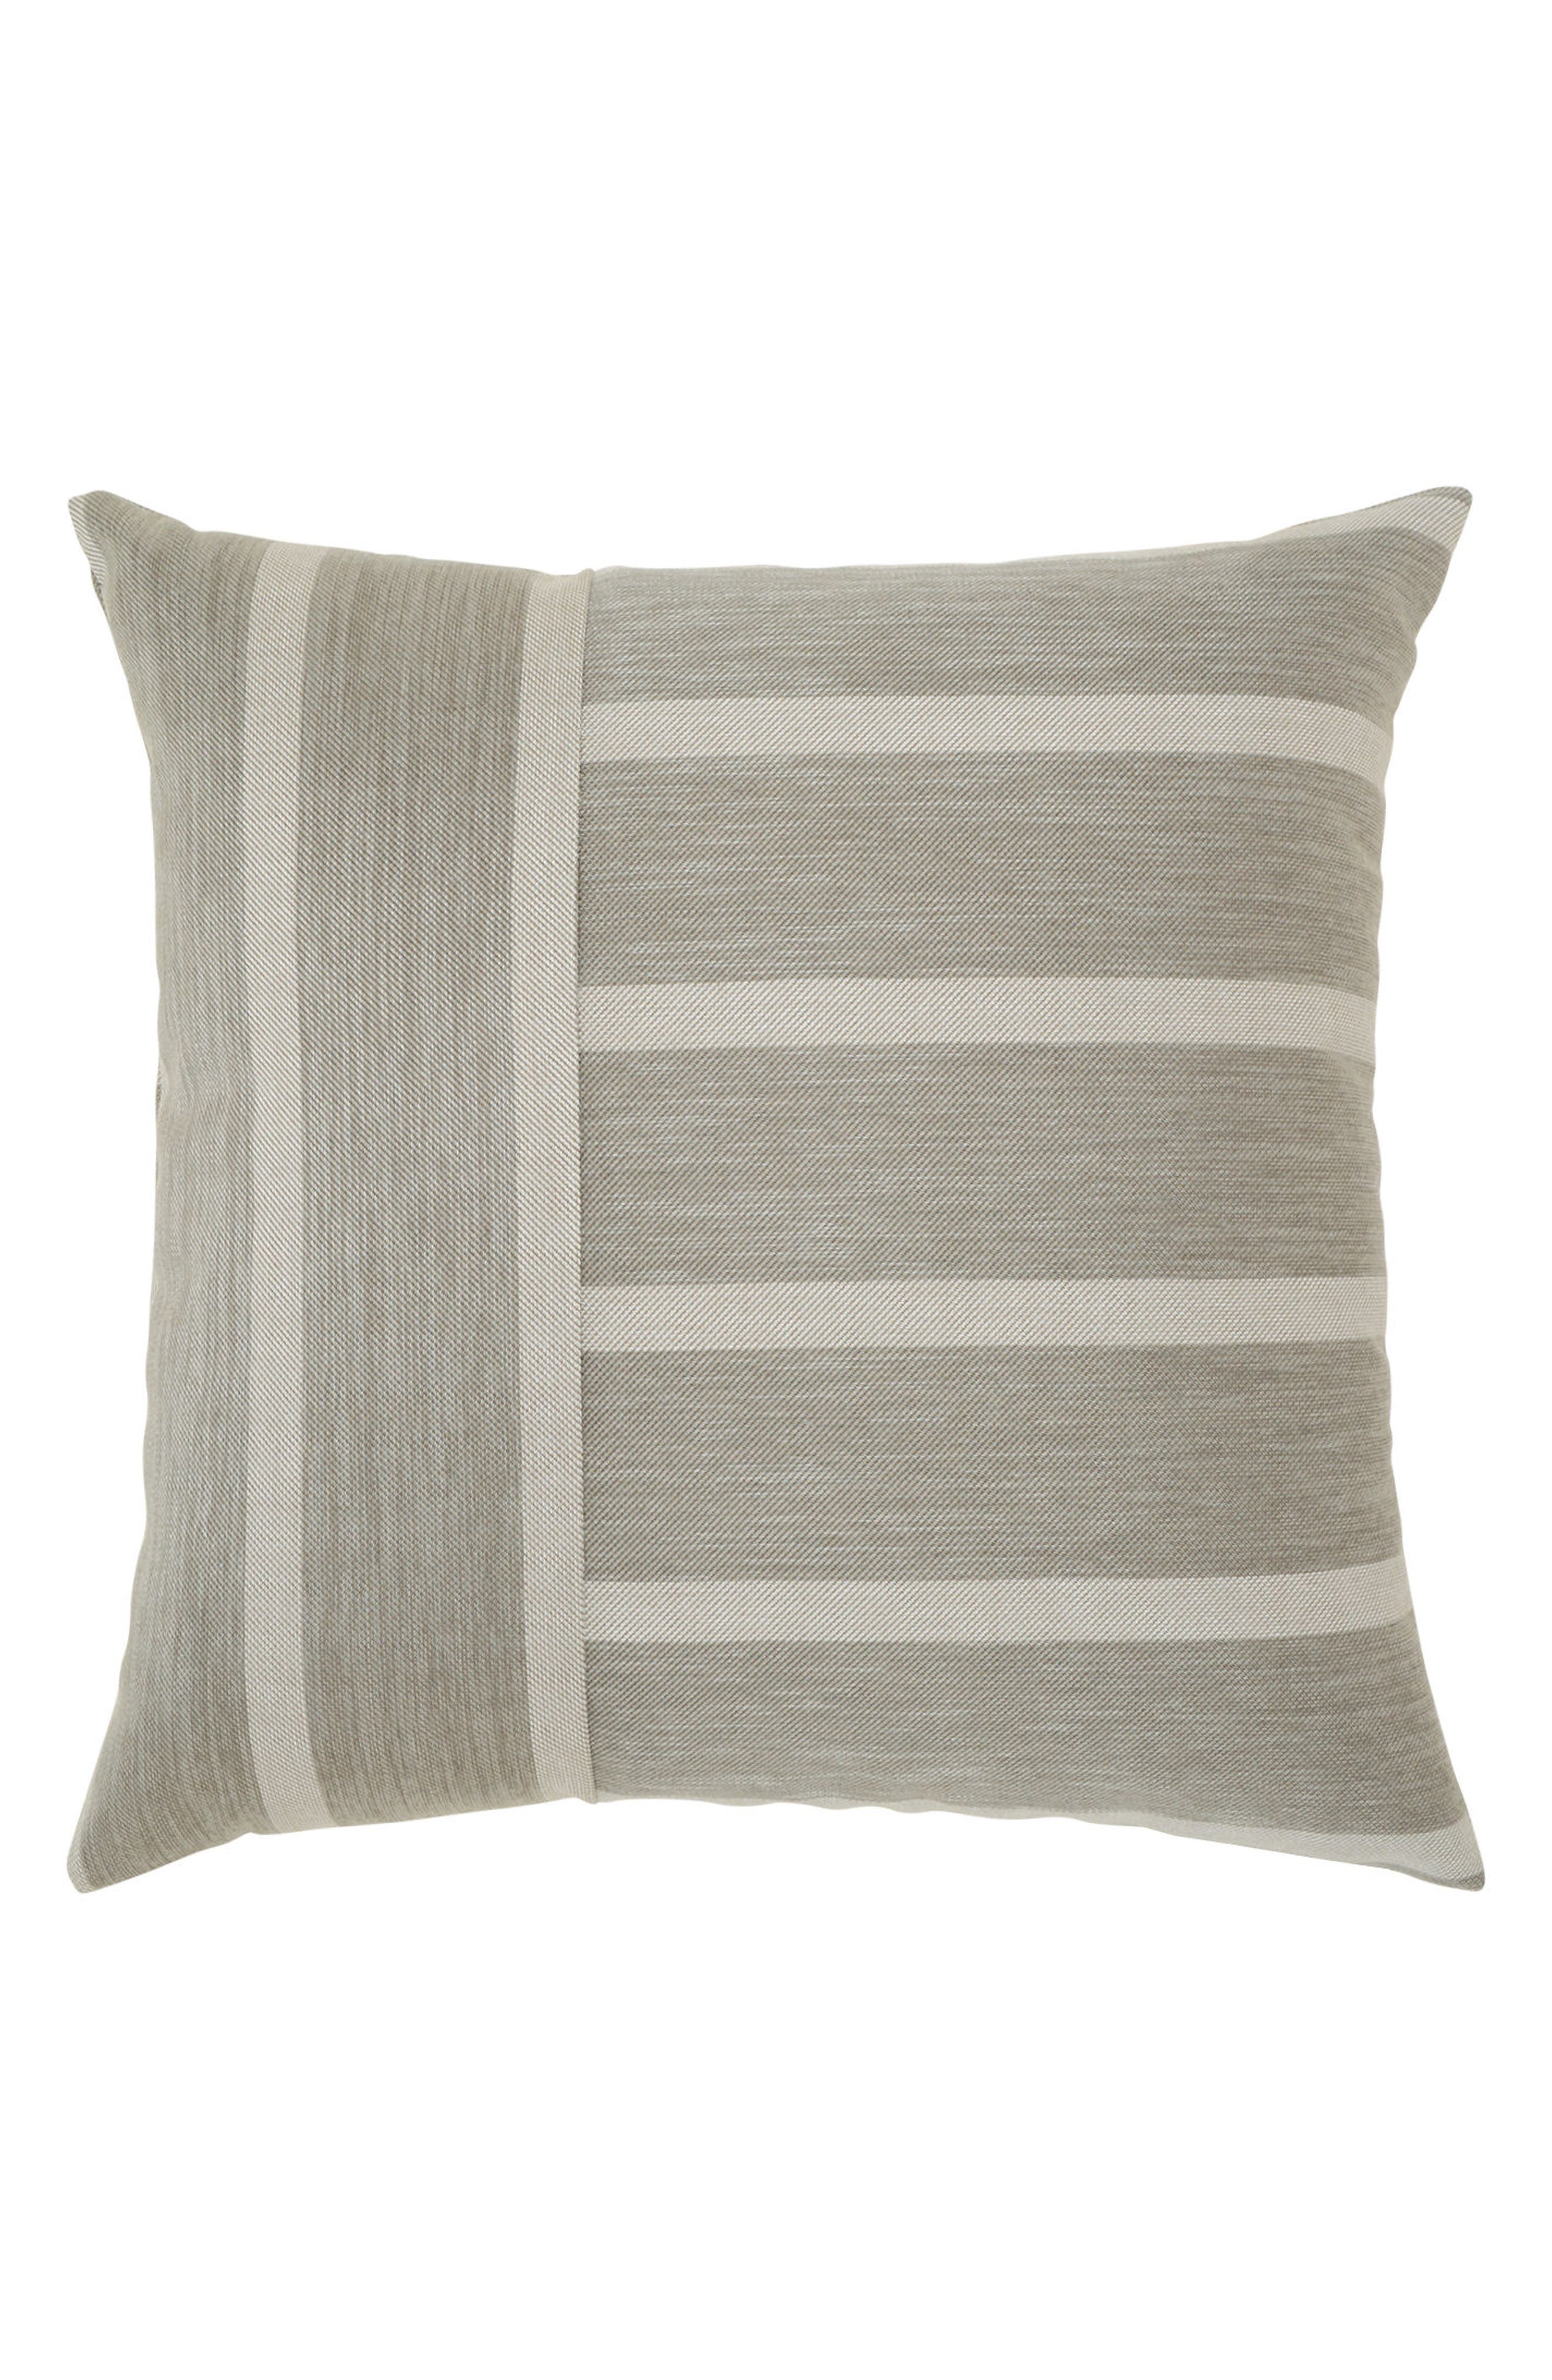 Sparkle Stripe Indoor/Outdoor Accent Pillow,                         Main,                         color, 020